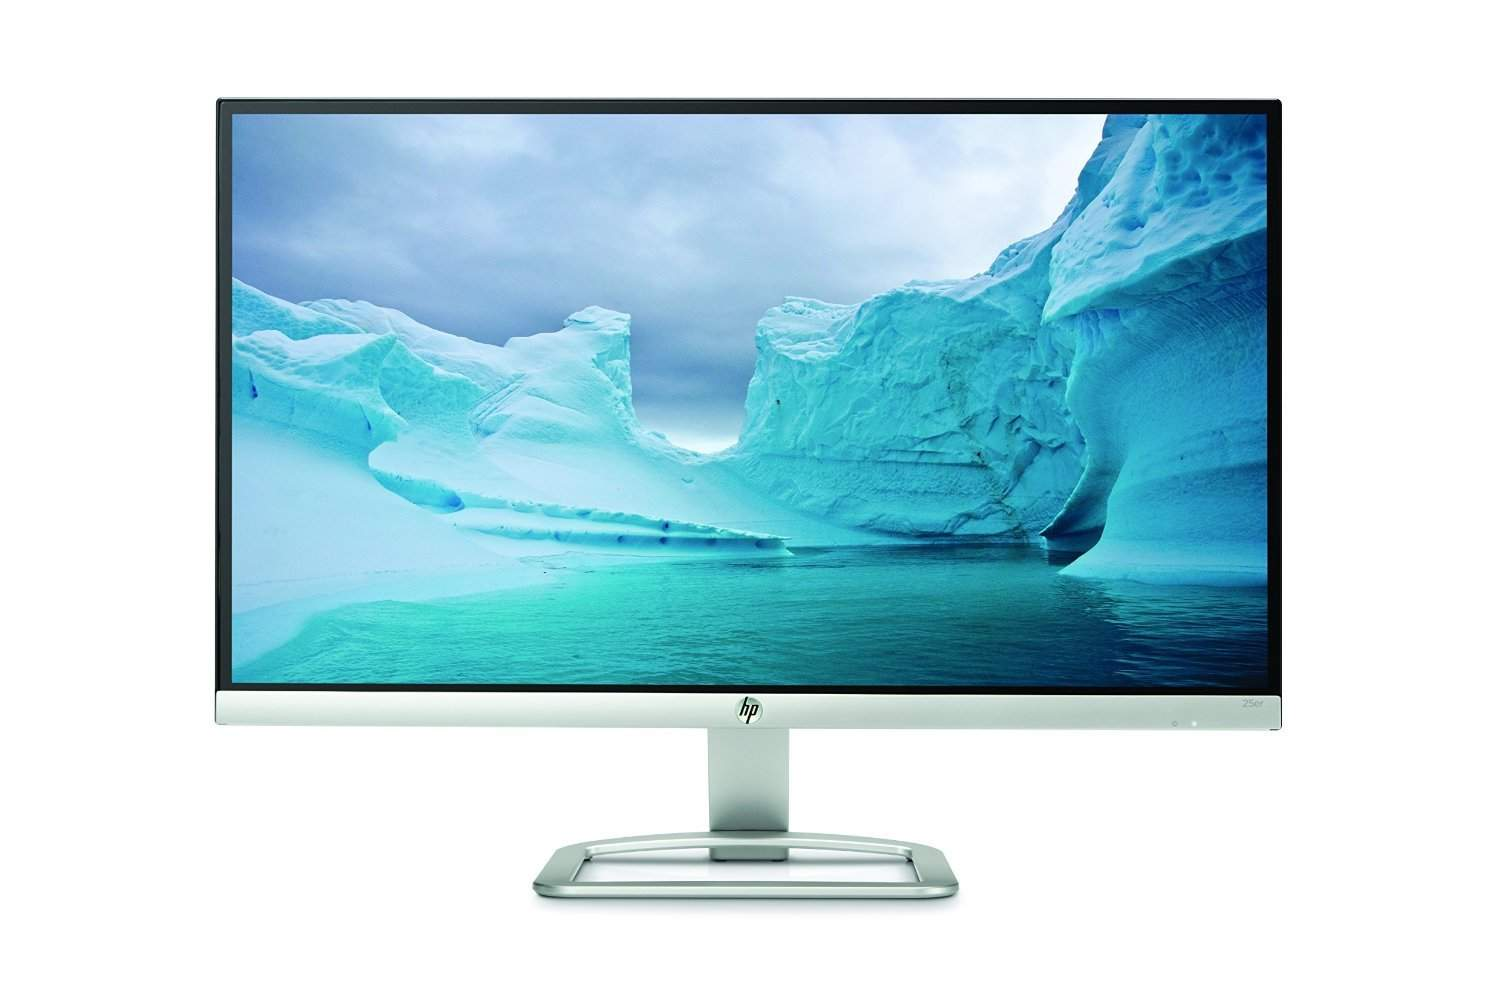 hp 23er 23 in ips led backlit monitor review